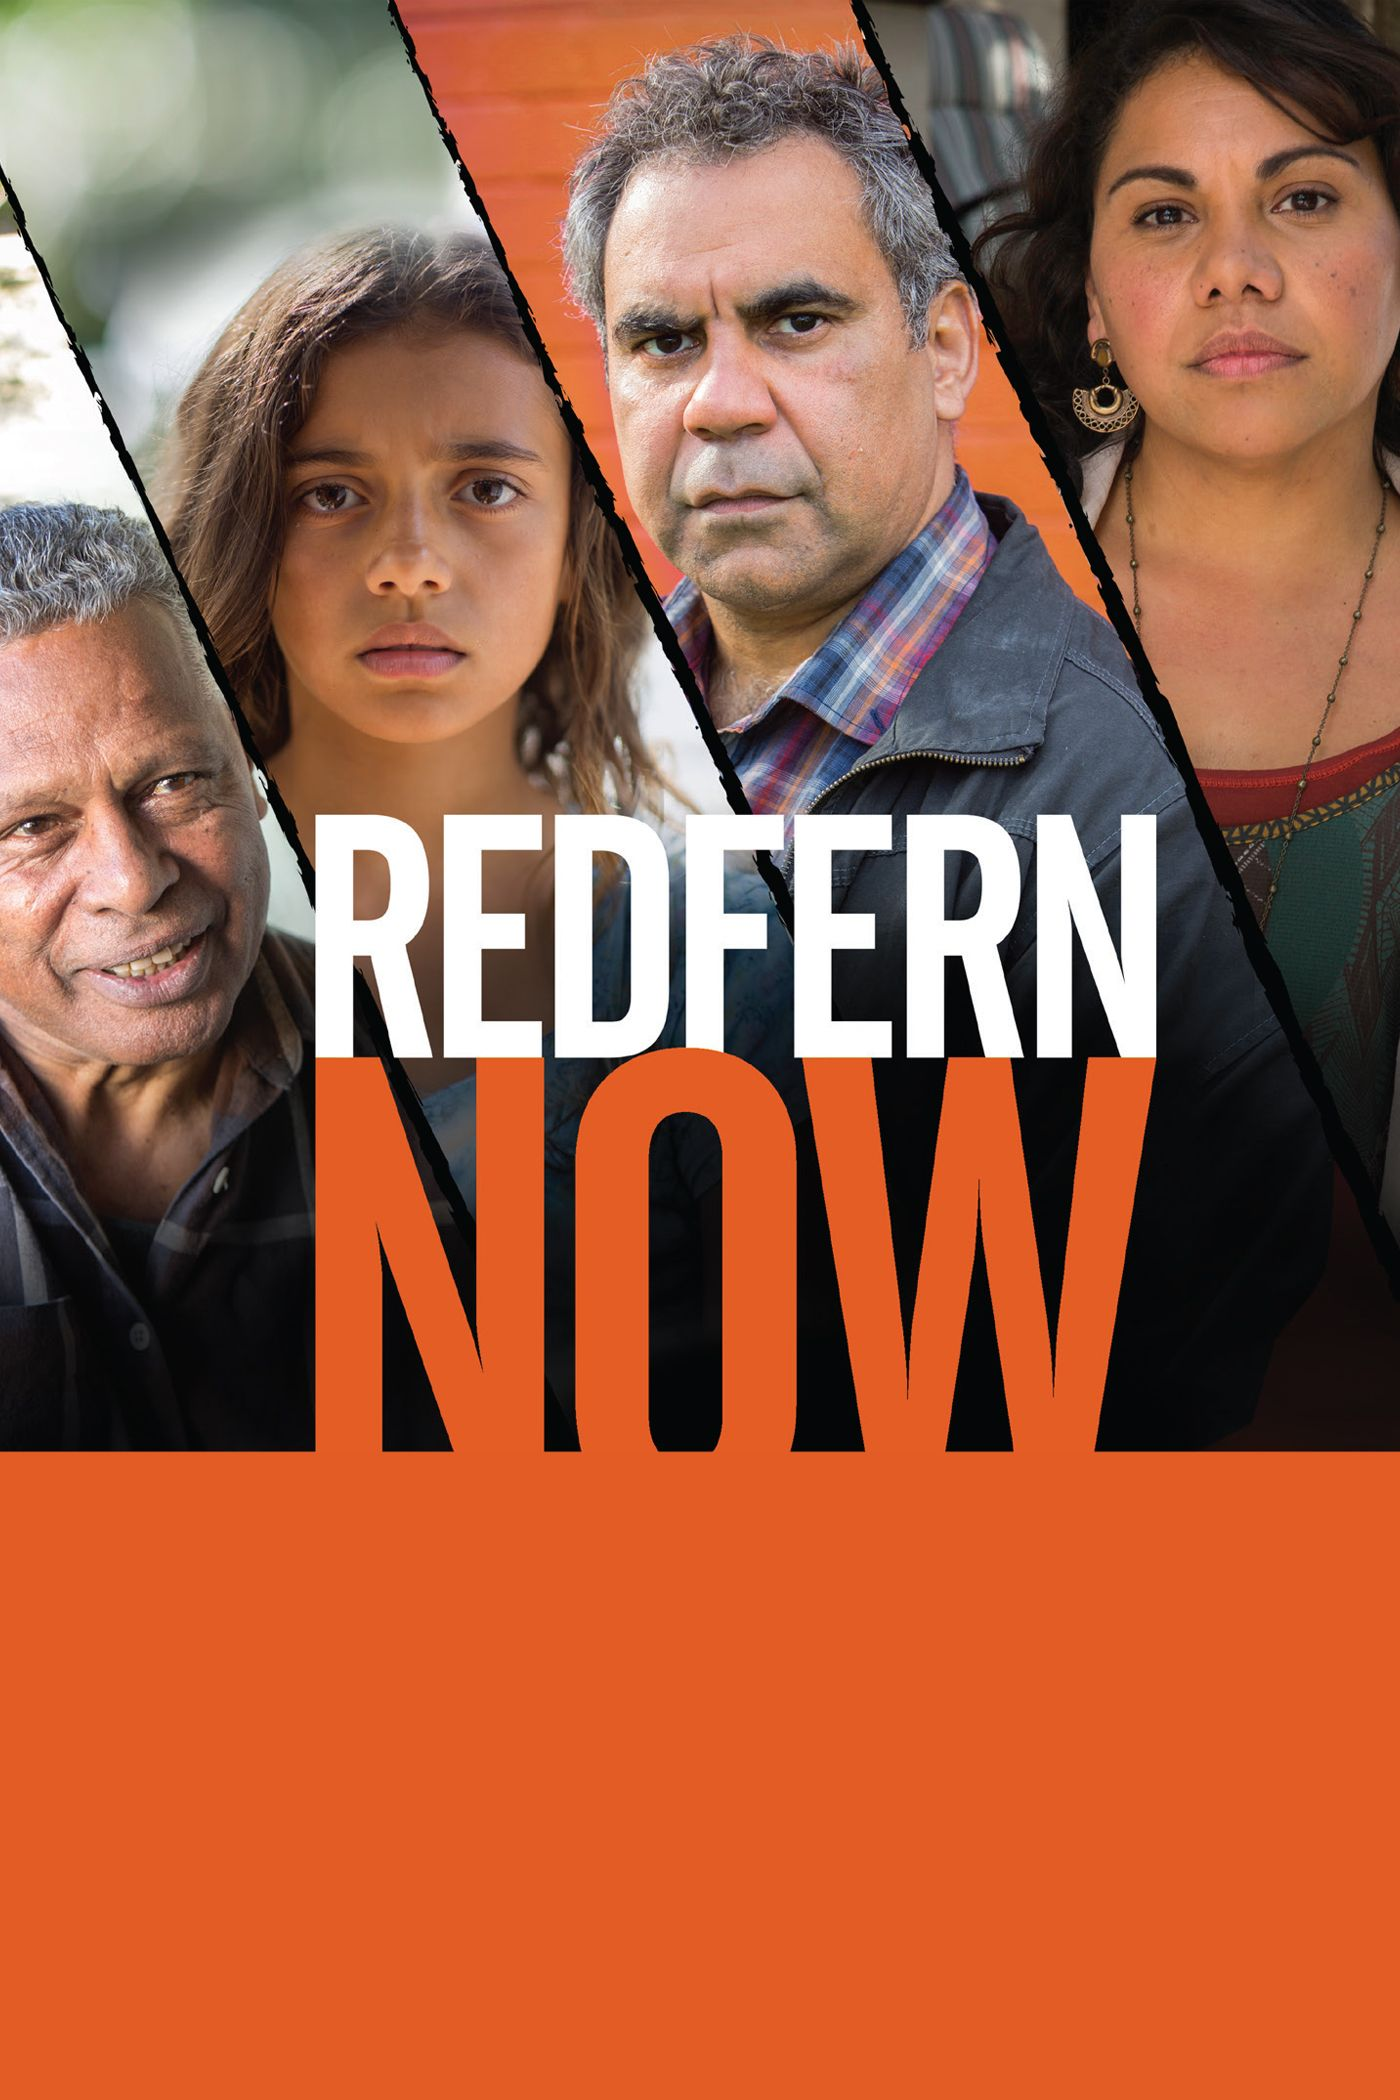 Redfern Now Television show, Celebrities, Slums